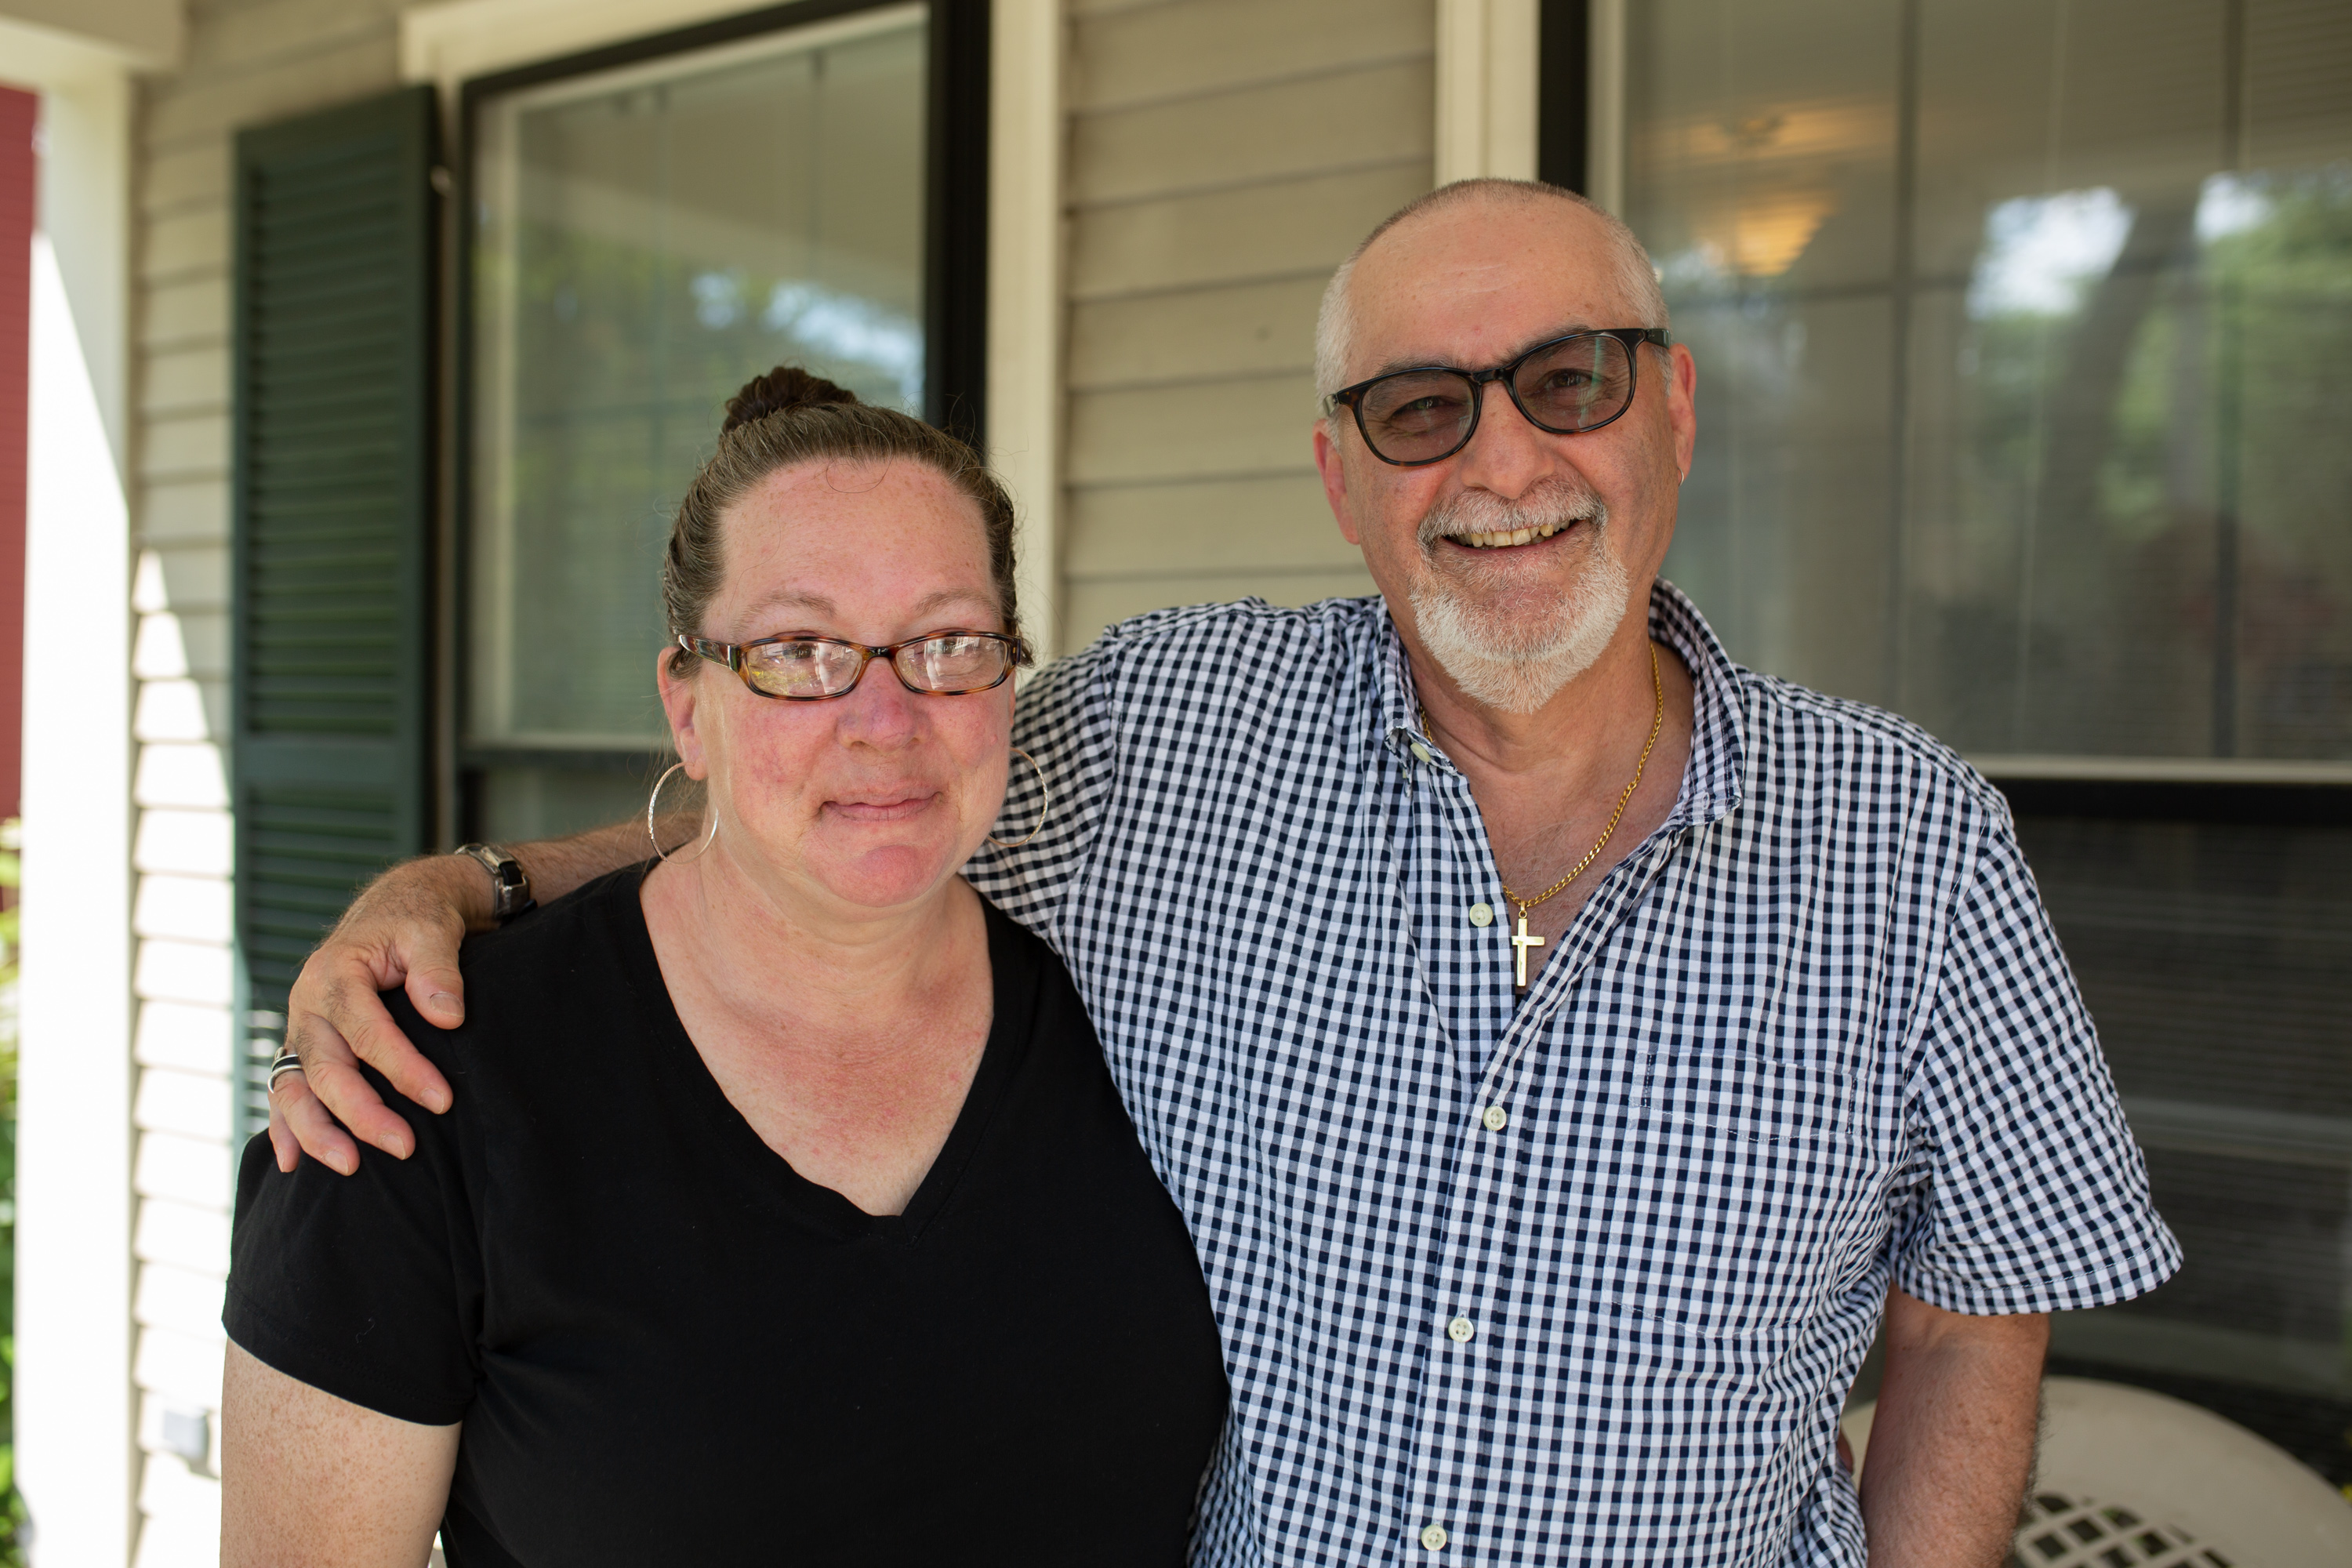 Gene Ferraro stands with his arm around Maryann Broxton on the front porch of the Center for the Adult Learner